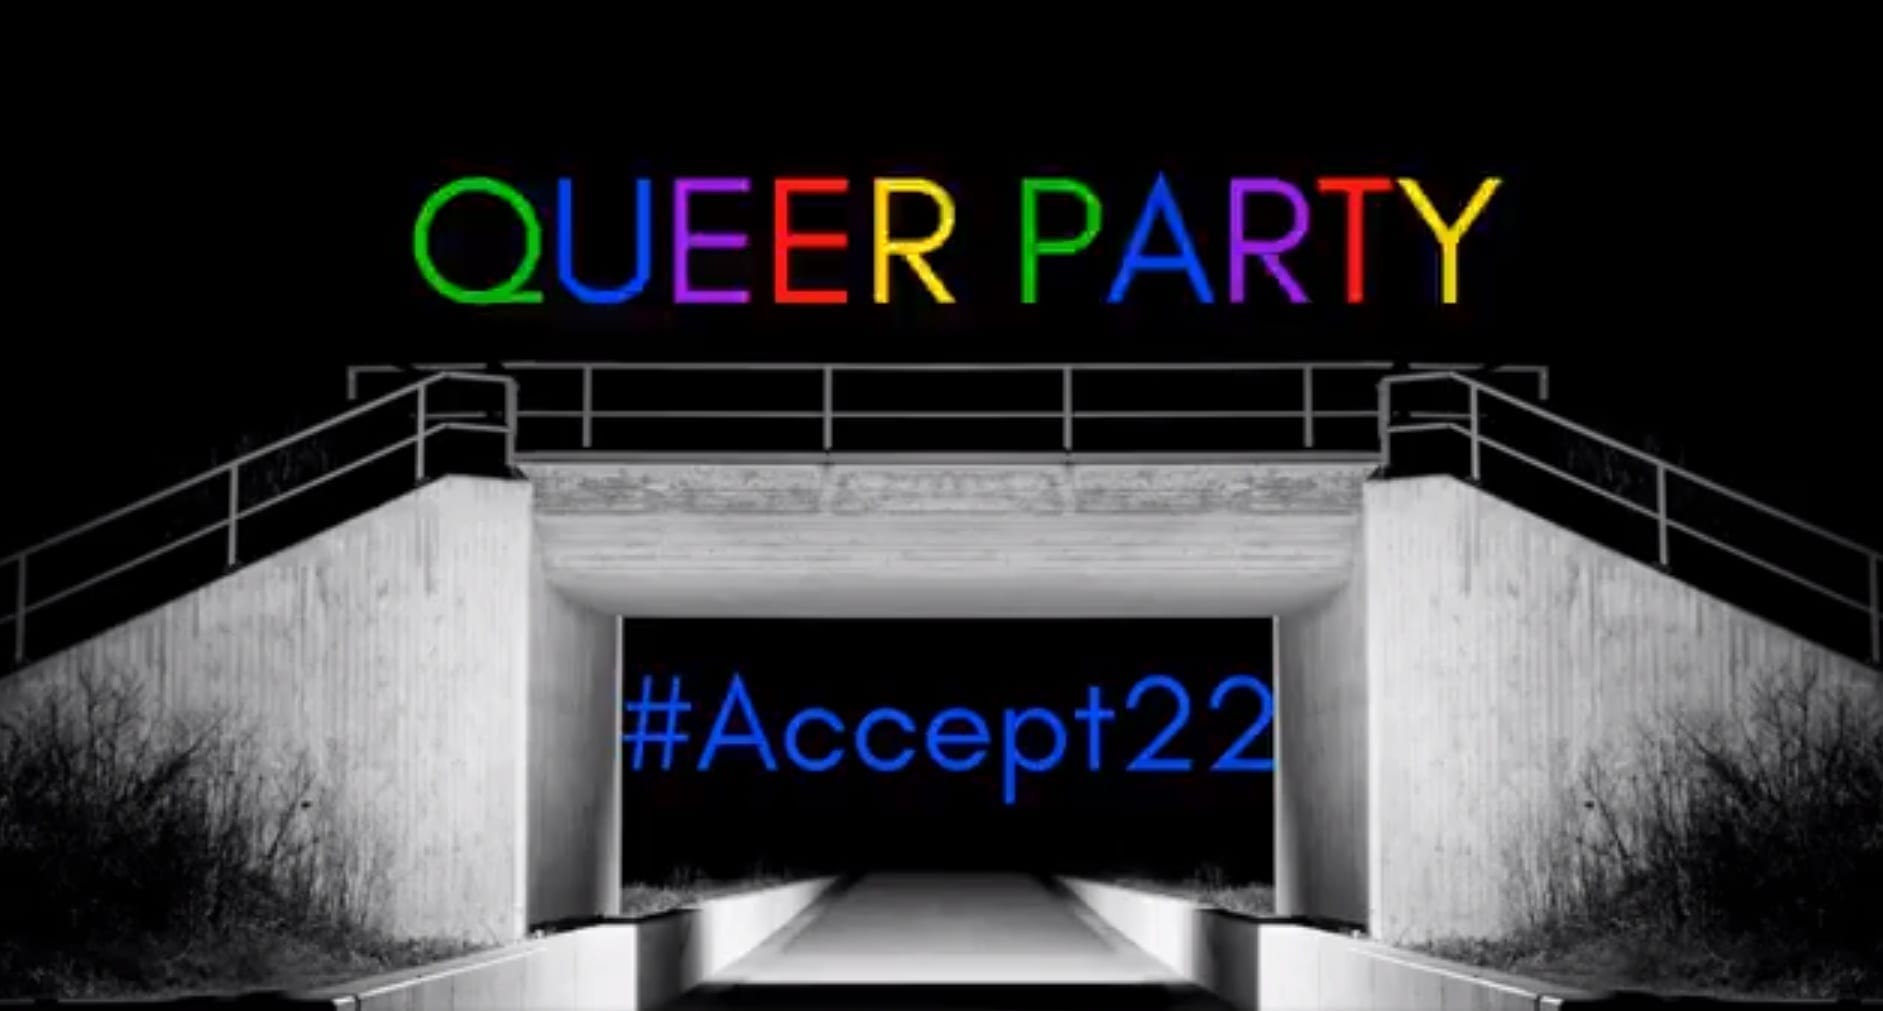 Accept22 | Anniversary Queer Party